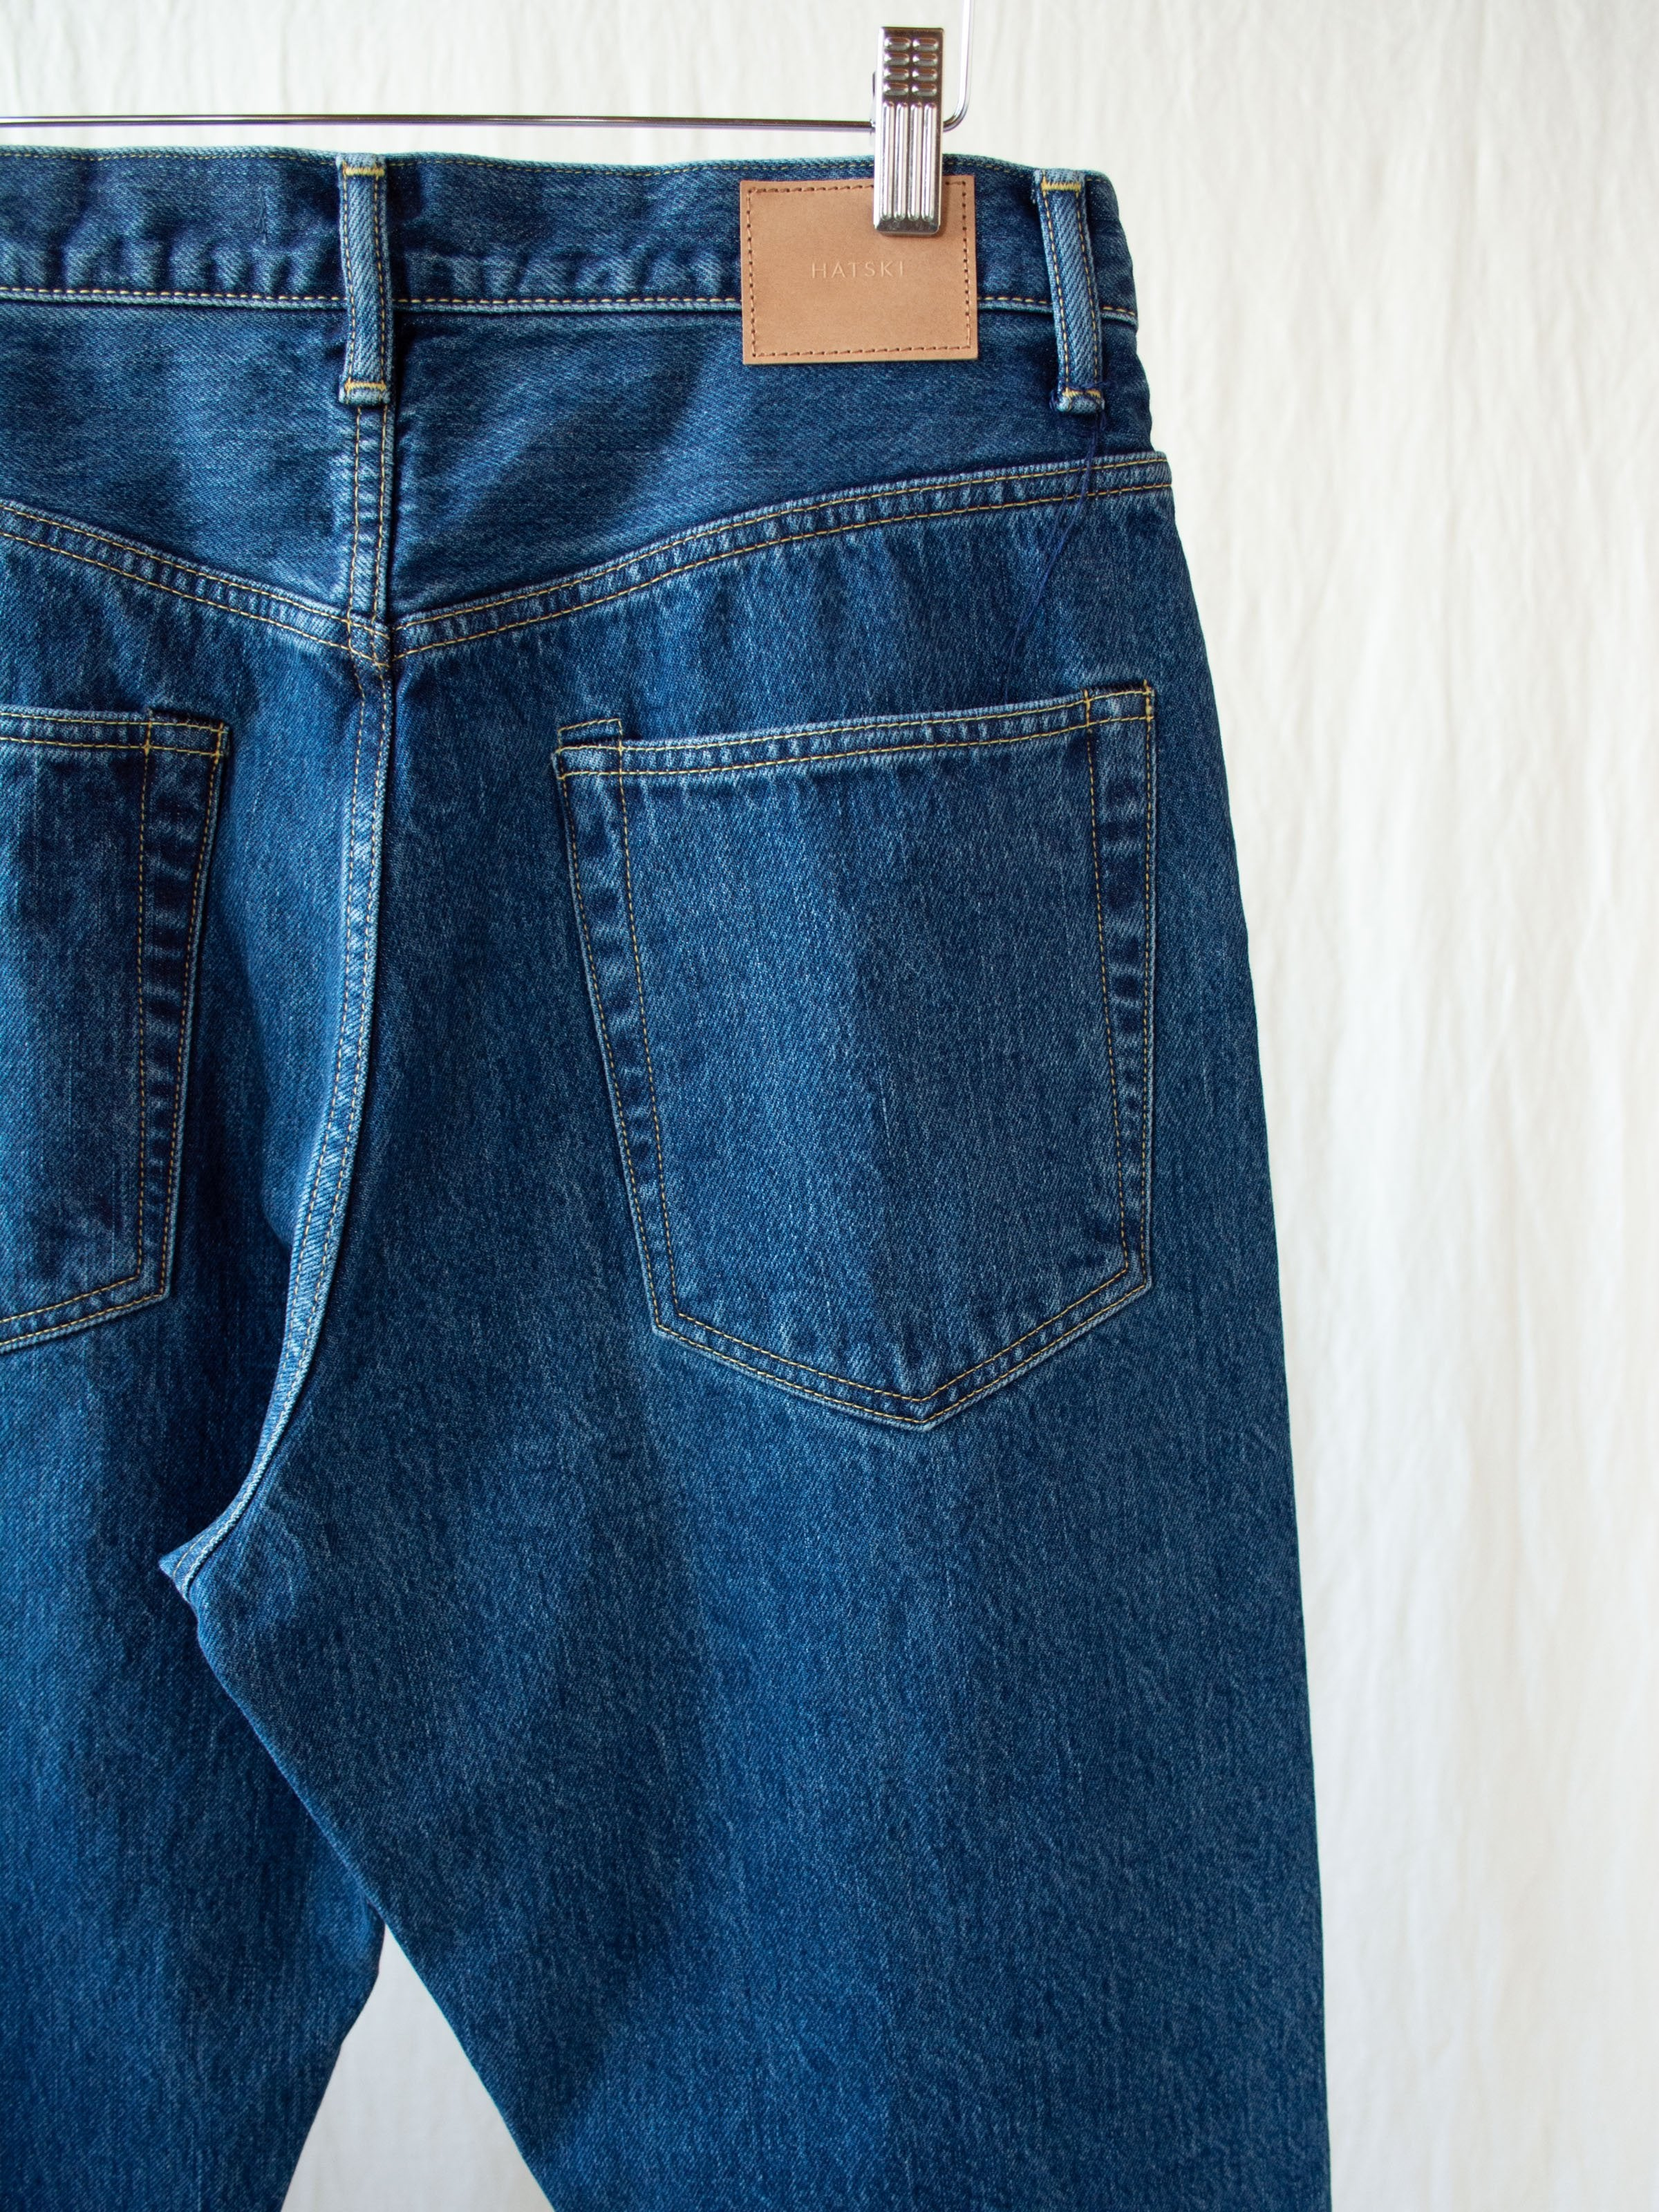 Namu Shop - Hatski Loose Tapered Denim - Blue